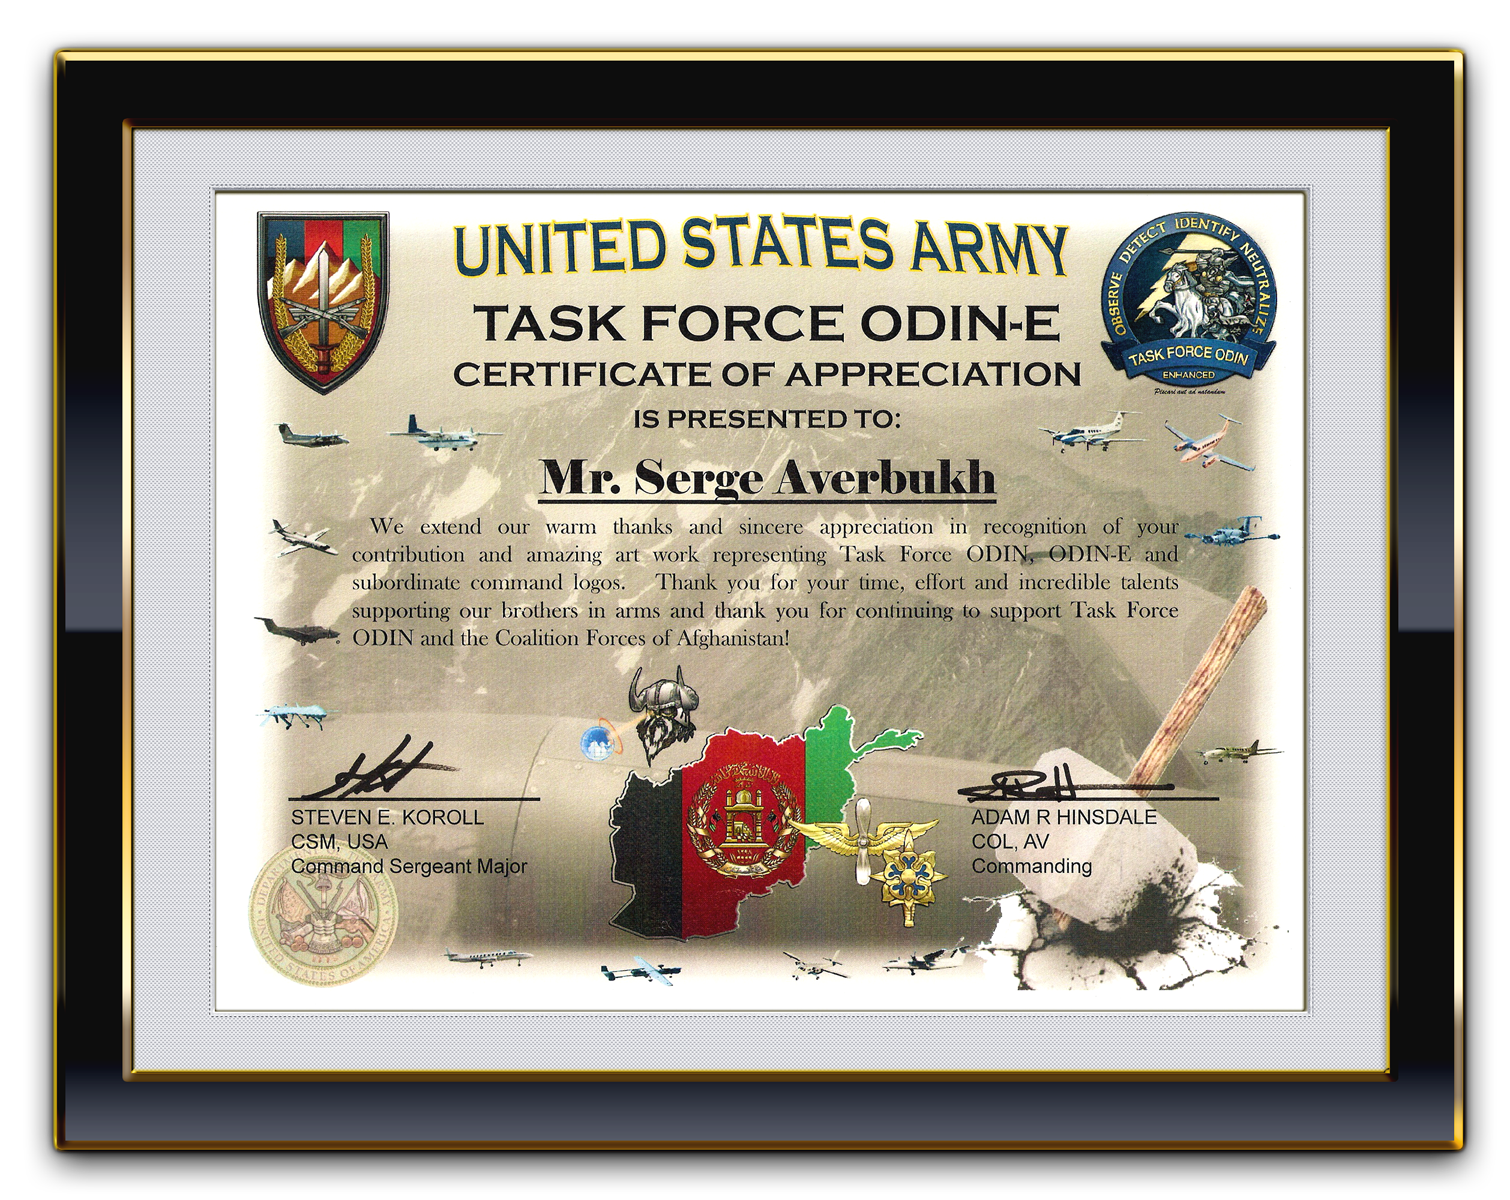 Military certificate of appreciation template choice image army certificate of appreciation template army certificate of appreciation template the awesome certificate of alramifo choice xflitez Image collections